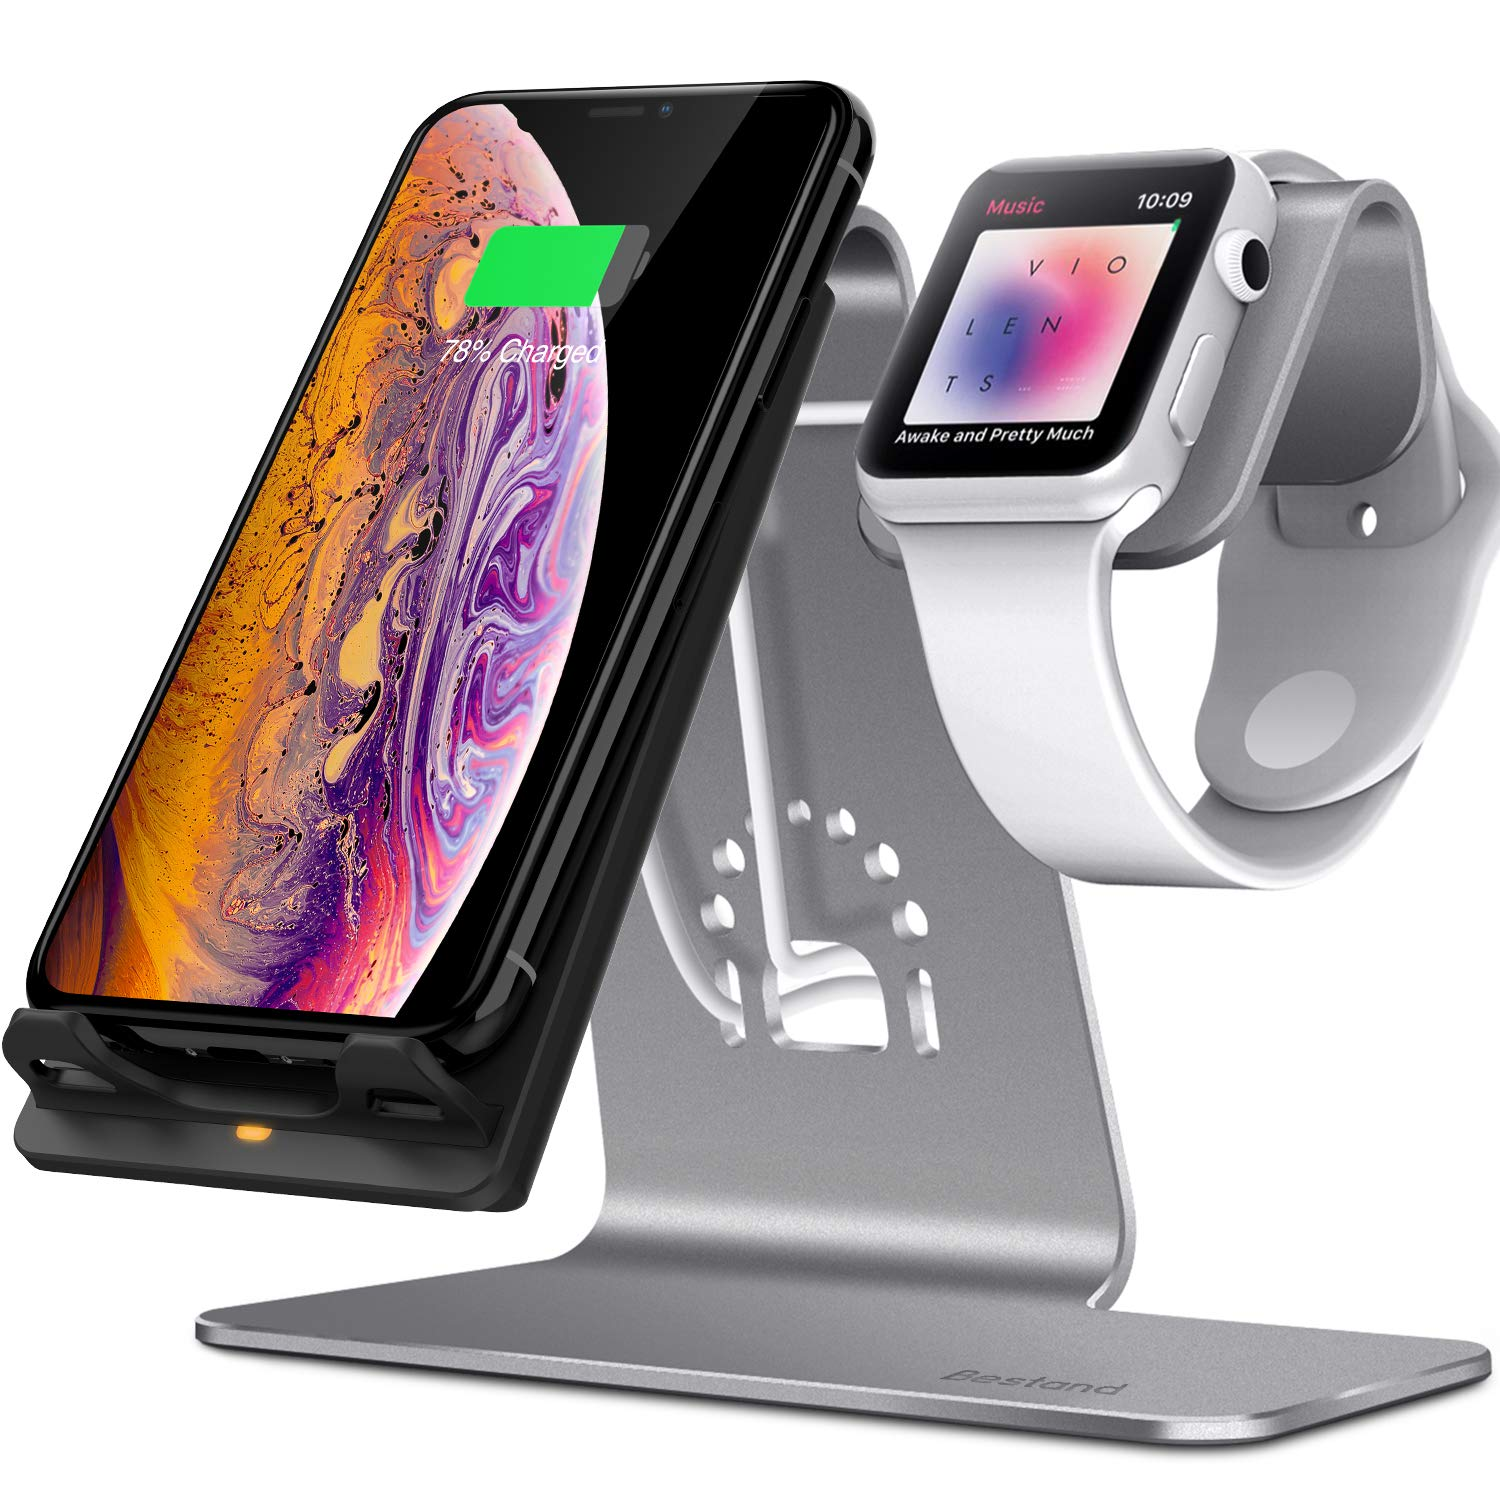 Bestand 2 in 1 Phone Wireless Charging Stand & Apple Watch Charging Stand Holder for Apple iWatch/iPhone X/ 8 Plus /8-Space Grey